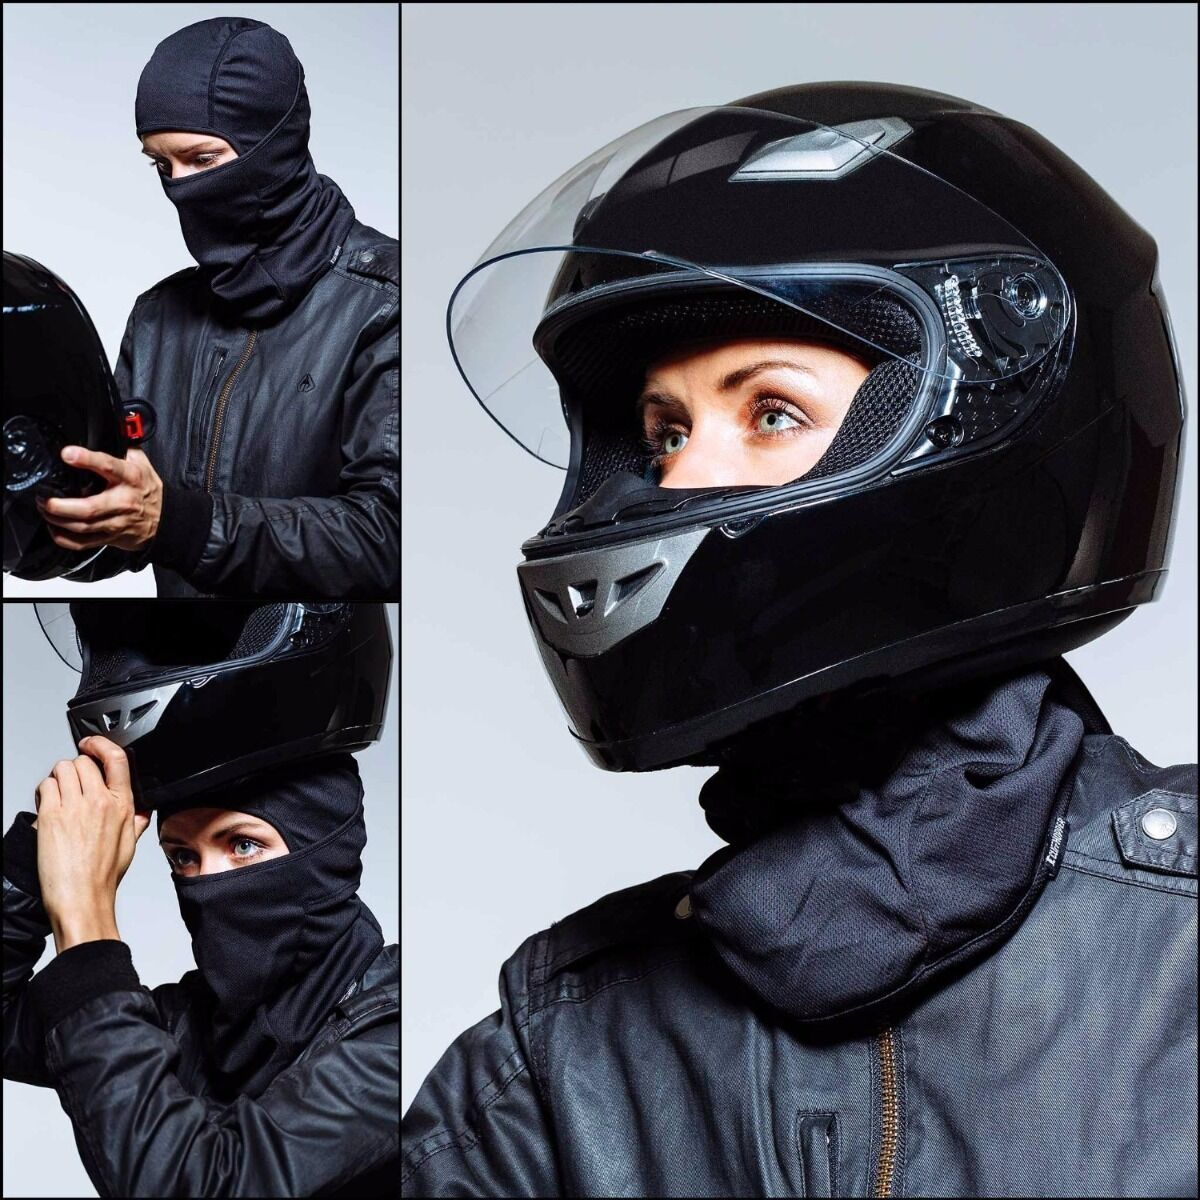 Ski [9in1] Face Mask Motorcycle Running Cycling Balaclava fr Cold/Hot Weather Clothing